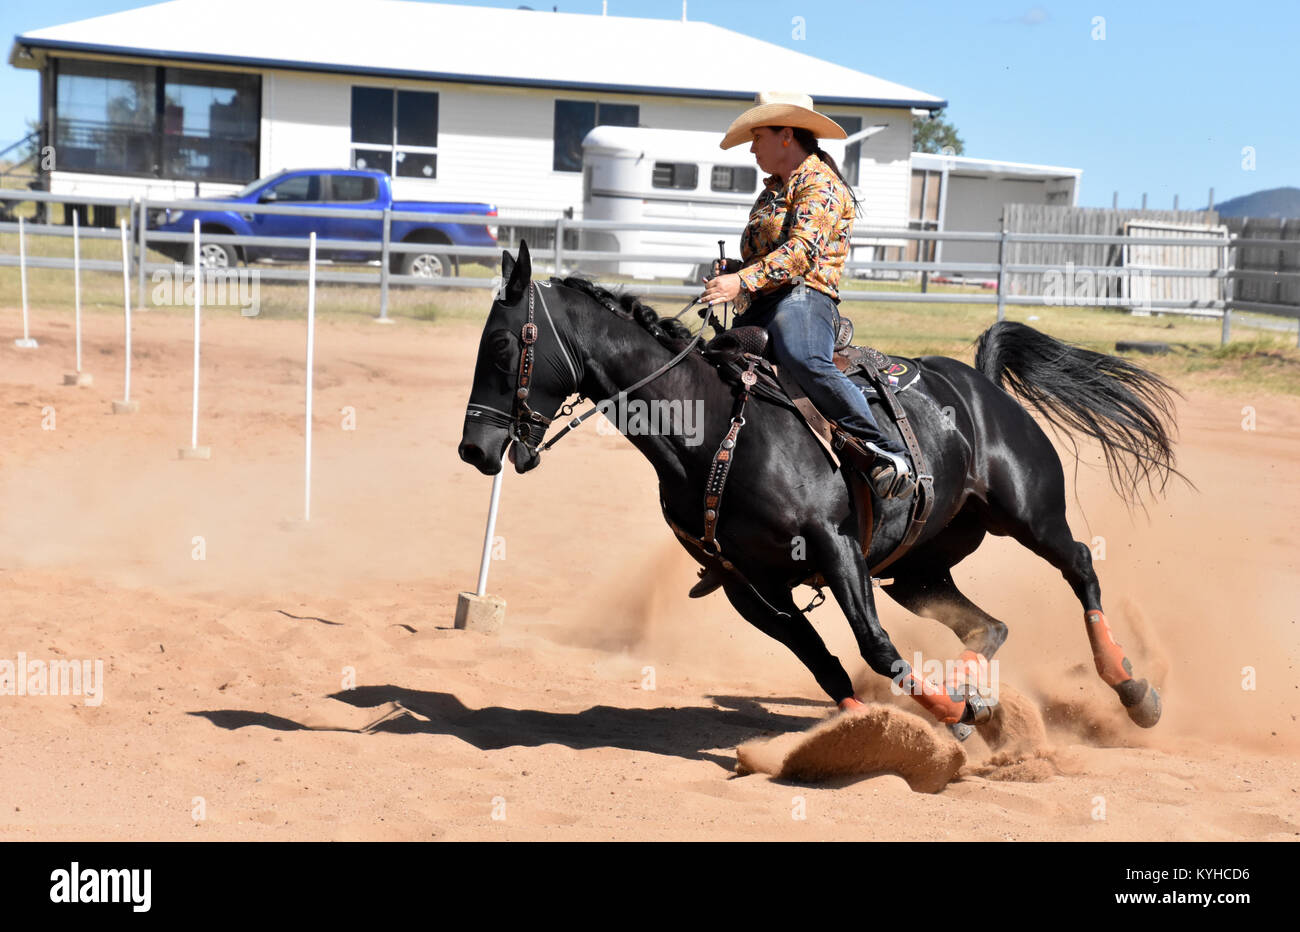 Rodeo Pole Racing High Resolution Stock Photography And Images Alamy